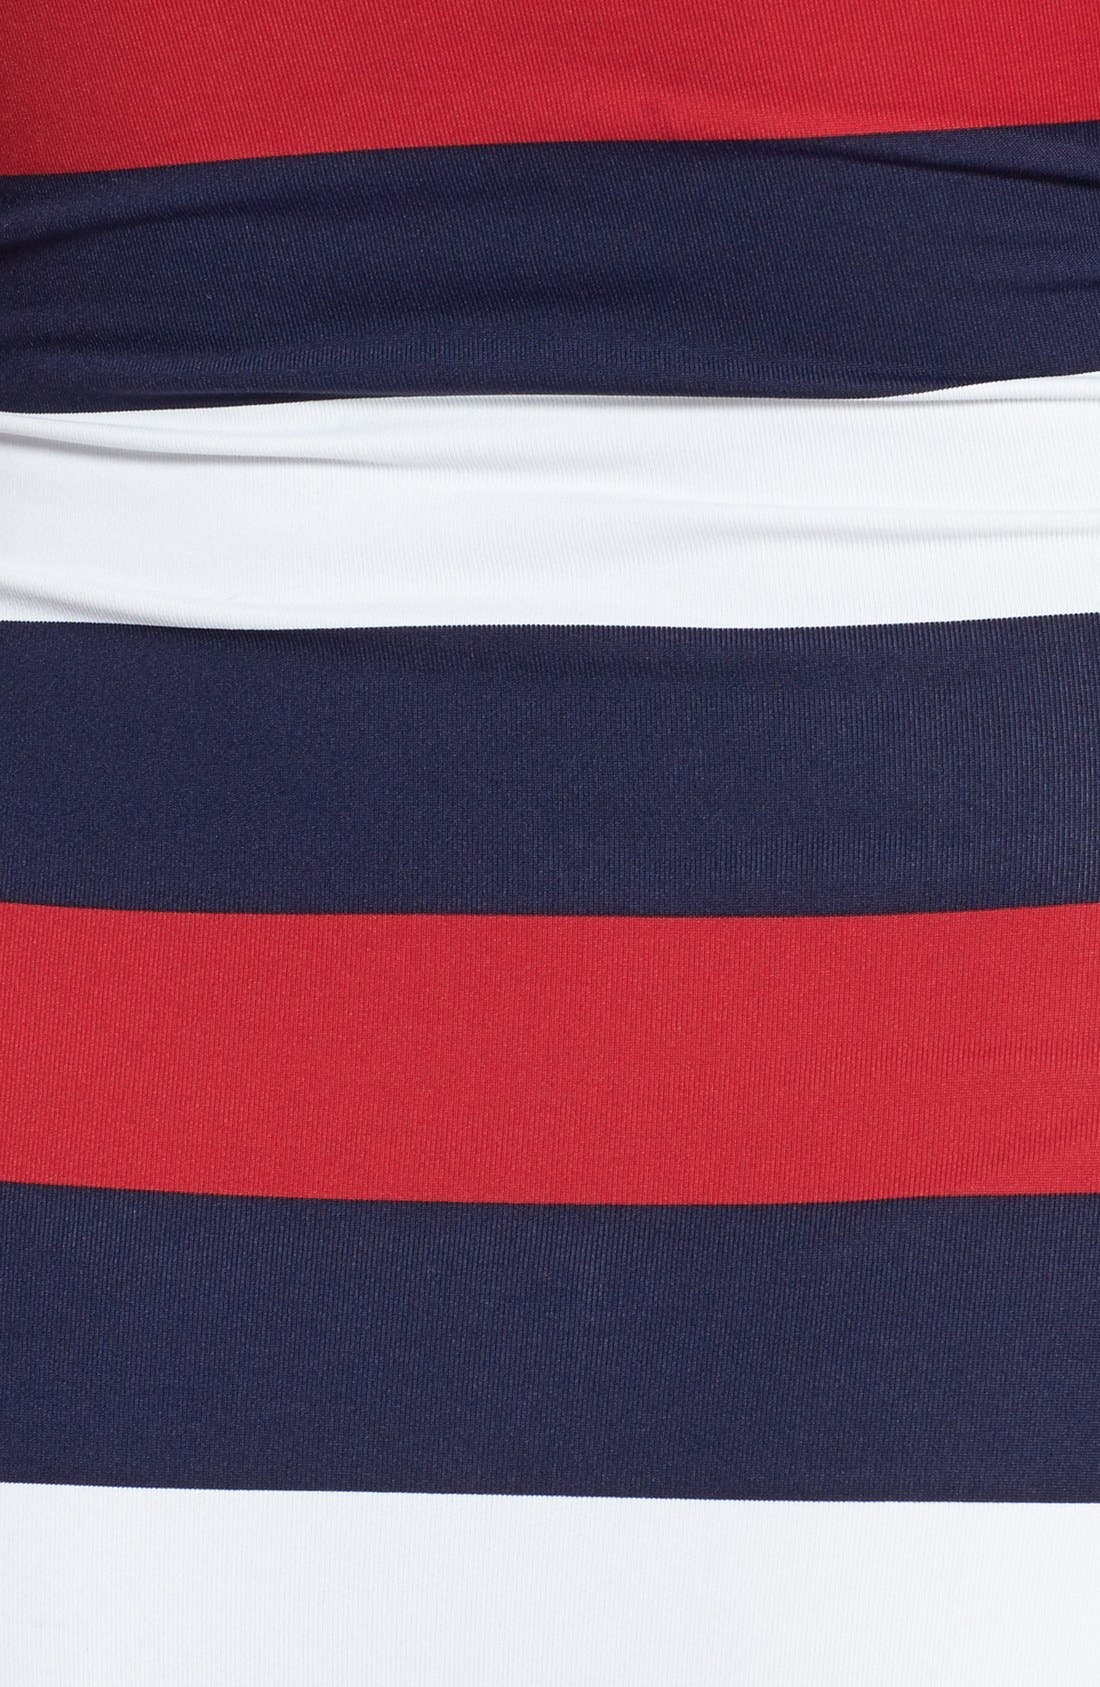 Alternate Image 3  - Tommy Bahama 'Rugby Stripe' Shirred Bandeau One-Piece Swimsuit